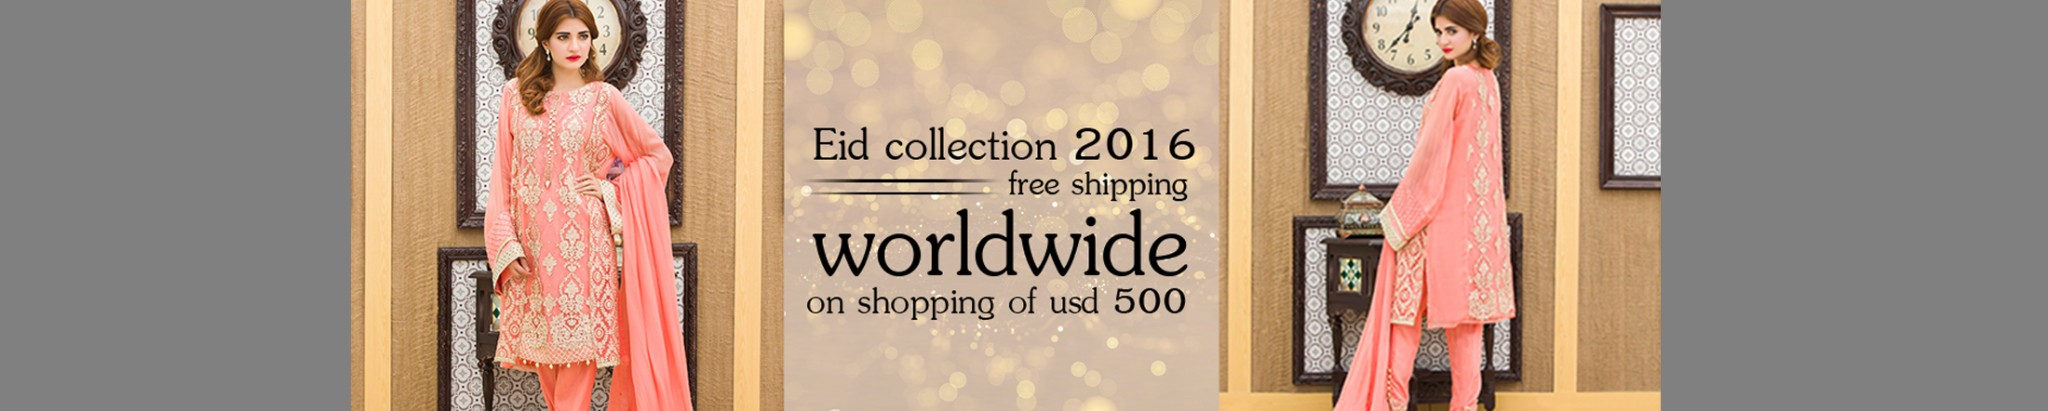 eidcollection2016